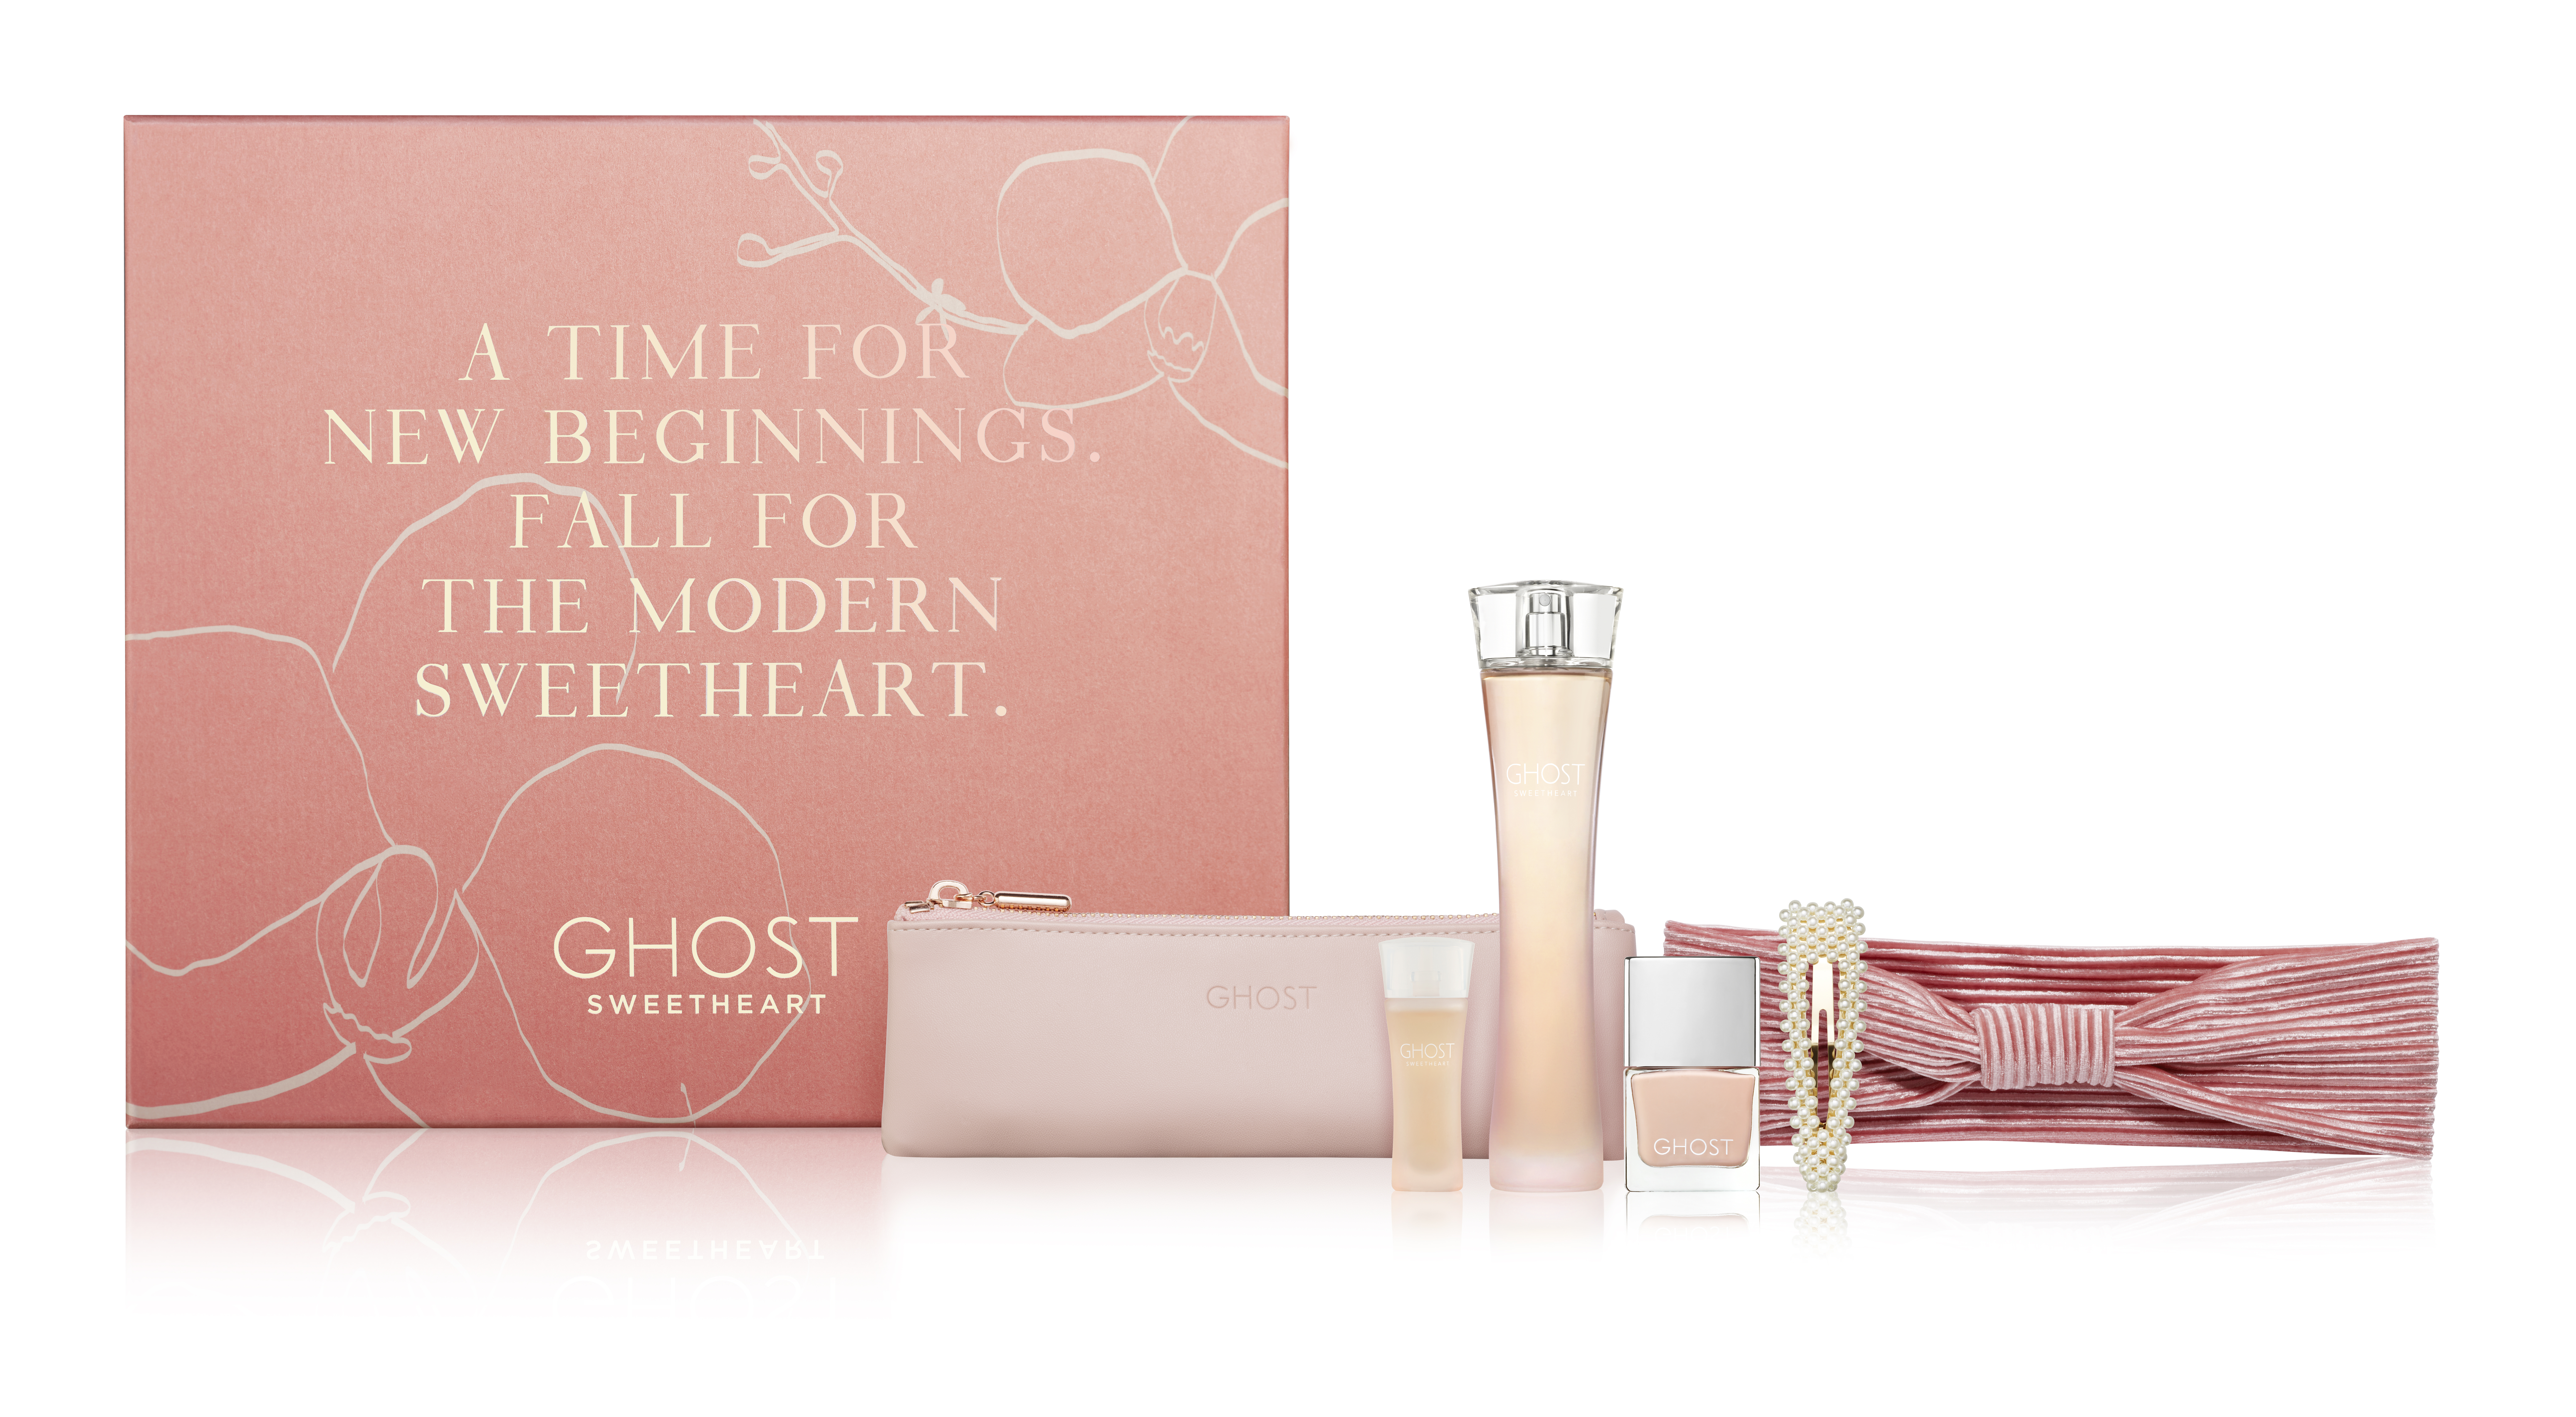 GHOST Sweetheart 50ml Gift Set 2020